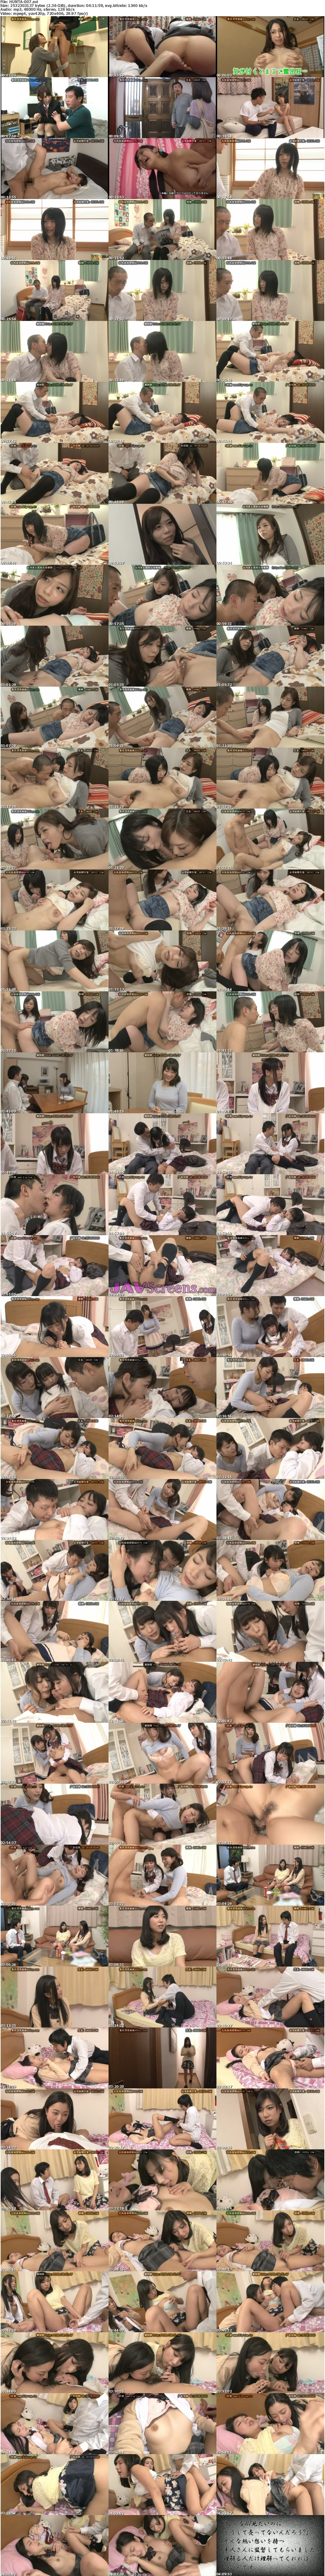 HUNTA-007.jpg - JAV Screenshot